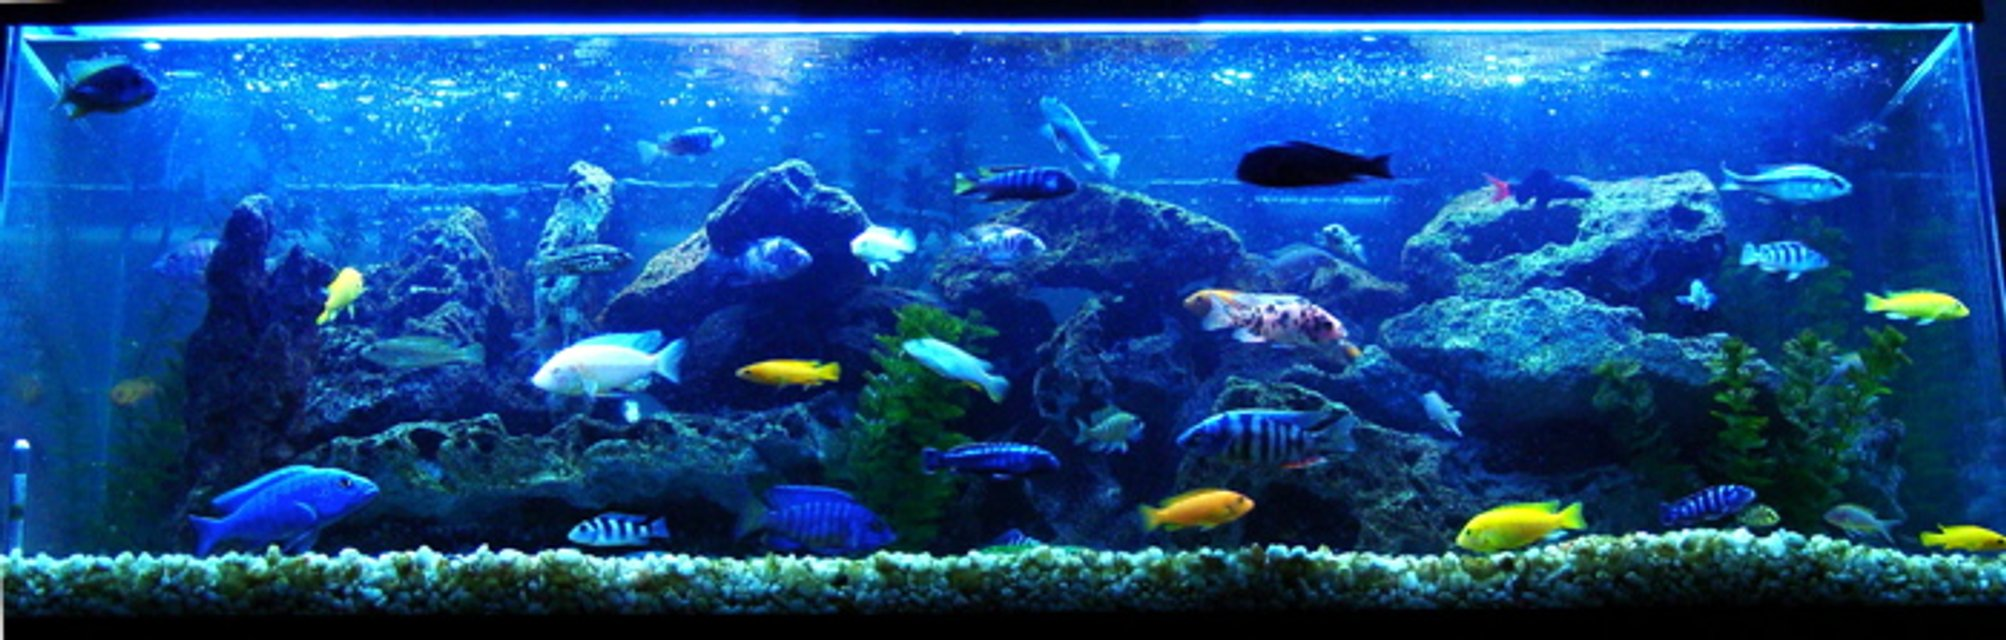 Rated #2: 60 Gallons Freshwater Fish Tank - My main African mixed tank is doing very well. Several breedings have been happening constantly, and keeping me very busy as well. I added a couple more Synodontis Multipunctatus (My all time favorite Cat) and I'm hoping for some spawns from them. My Electric Blue is holding again for her second time, I can't wait for them! I'm in the works of getting my father's tank to replace this one, just gotta figure out how to get it over to my place. 